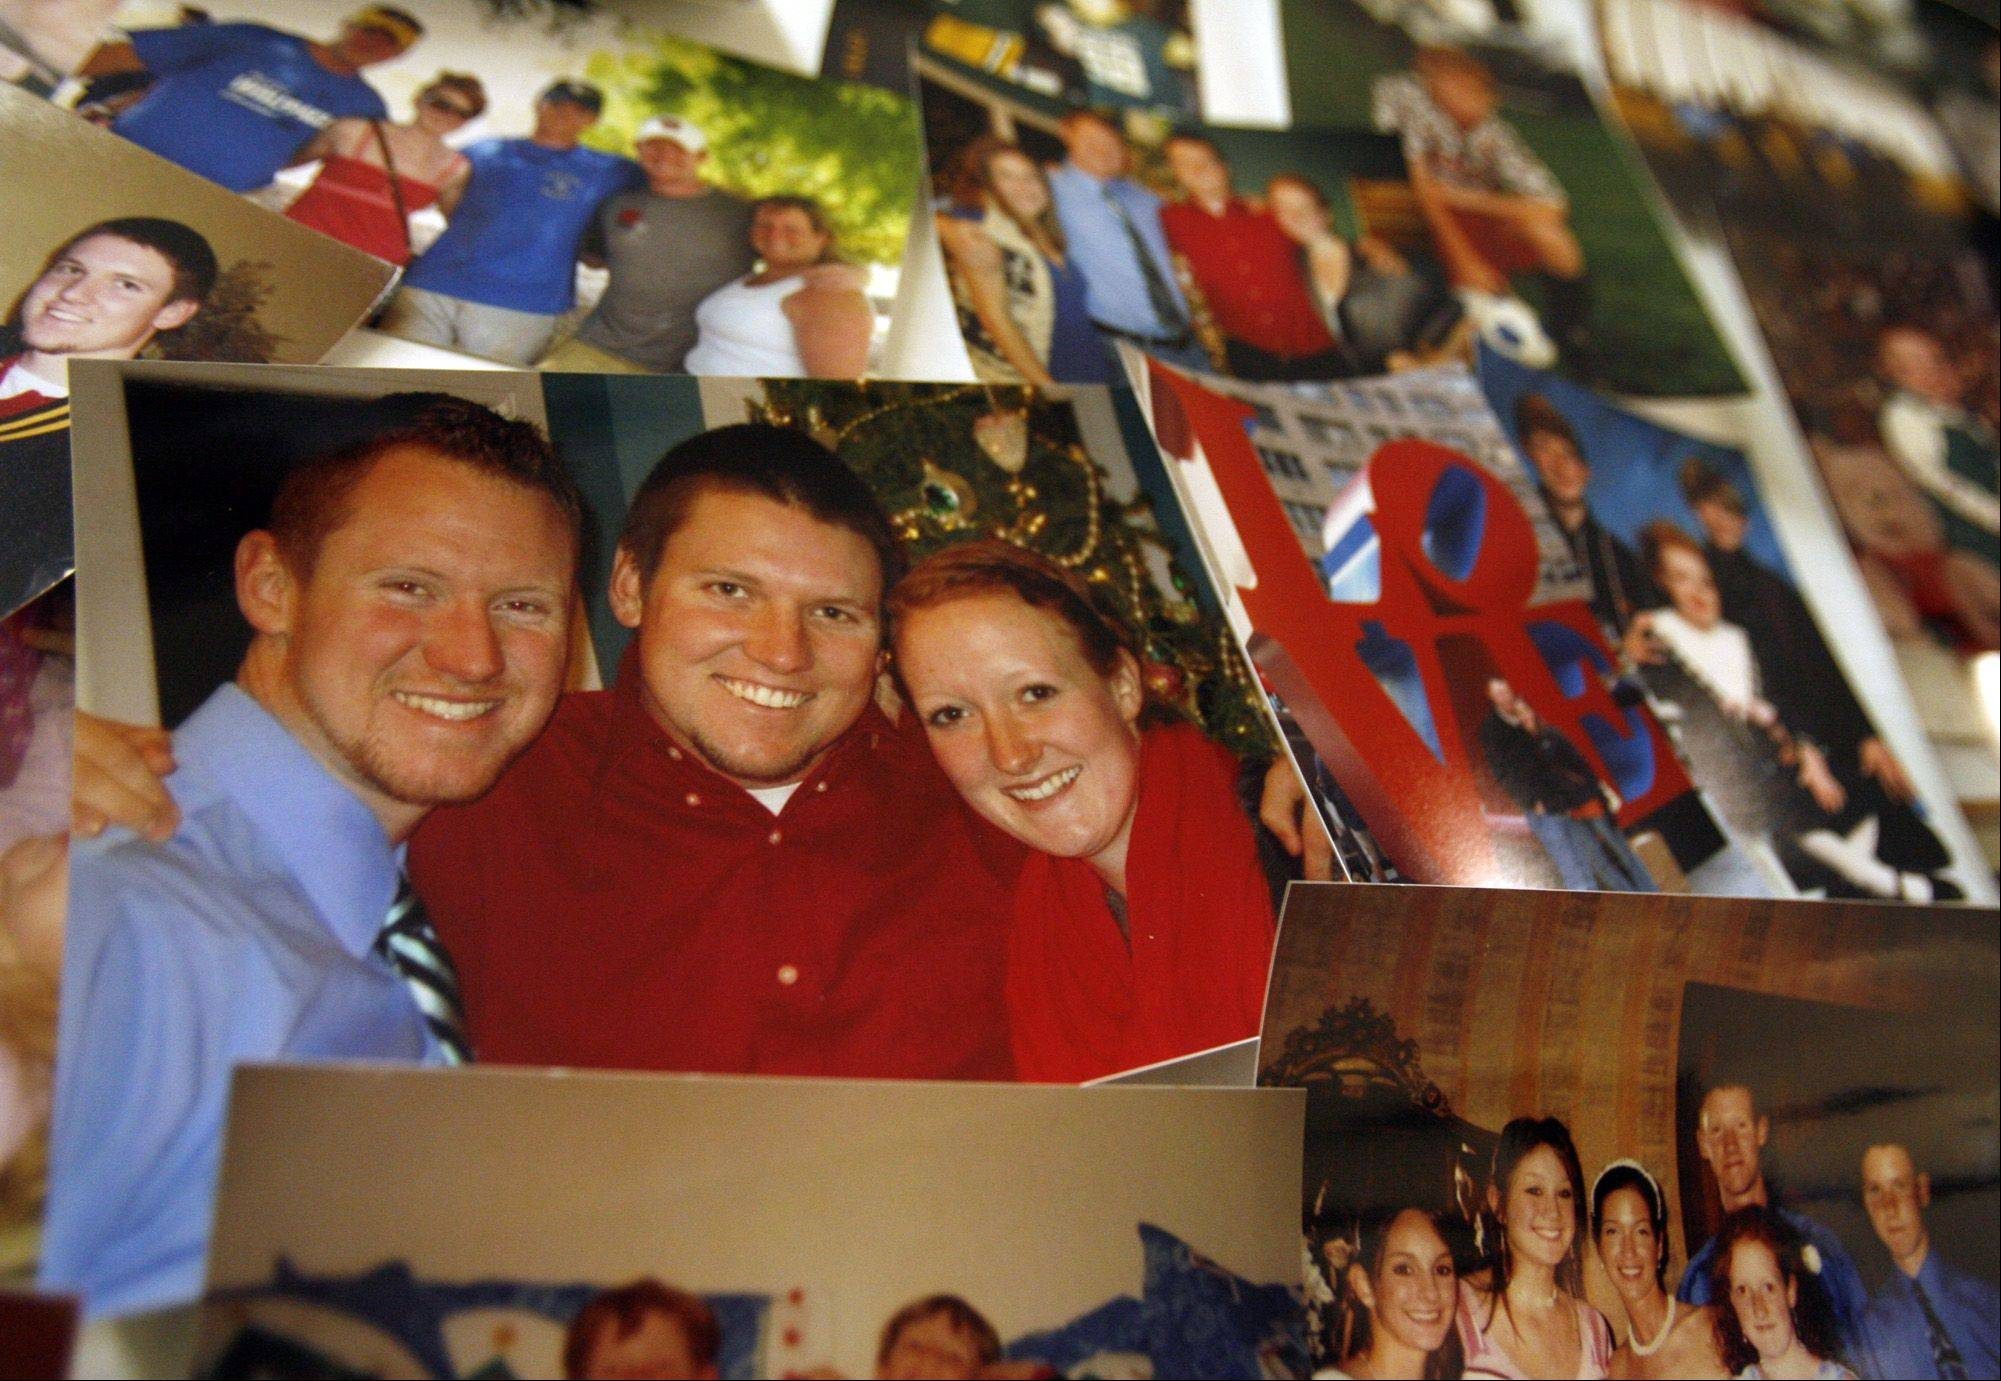 Photographs of Shaun Wild, including several with his brother Kevin and sister Shannon, on display before the memorial service.